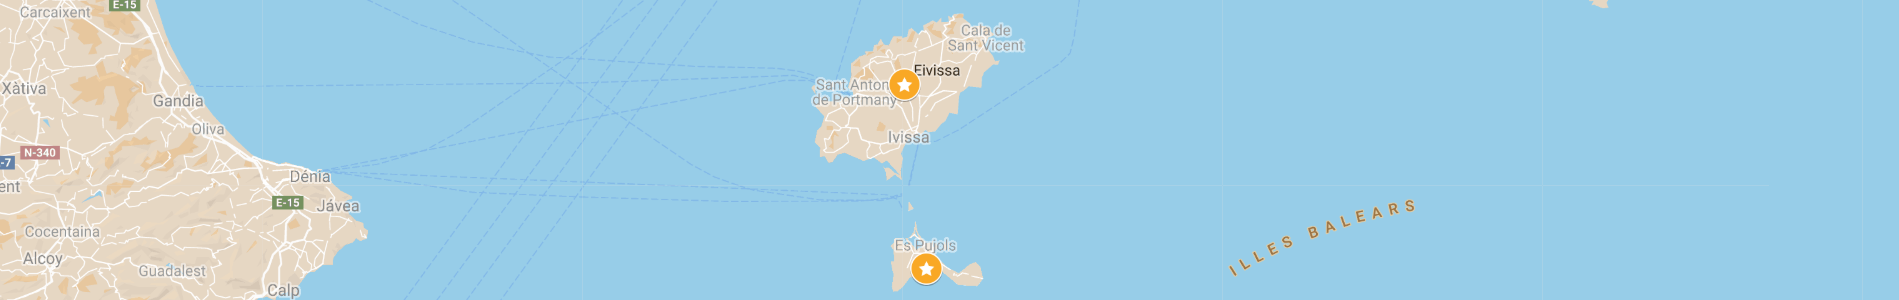 route-holiday-in-a-sailing-boat-to-Balearic-Ibiza-Formentera